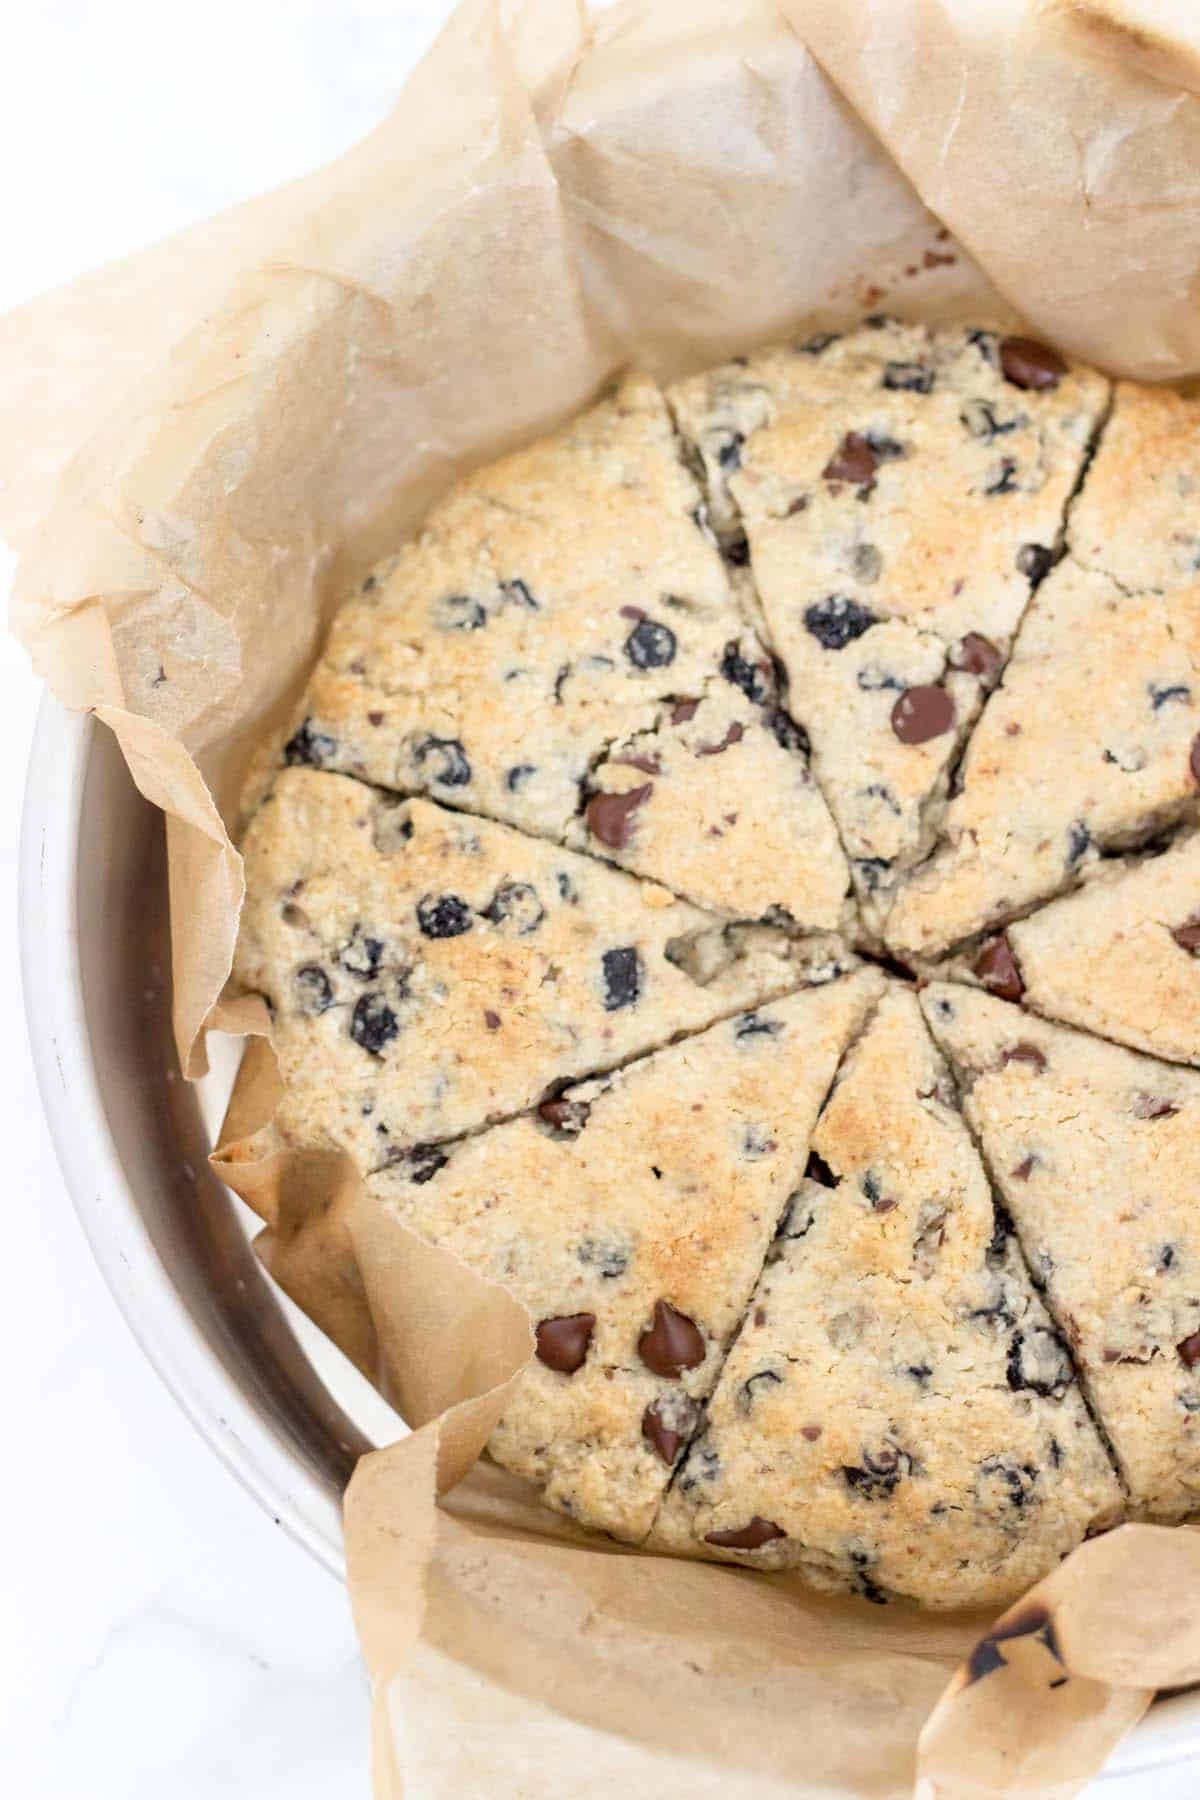 Paleo And Vegan Blueberry Chocolate Scones Easy Delicious And The Perfect Make Ahead